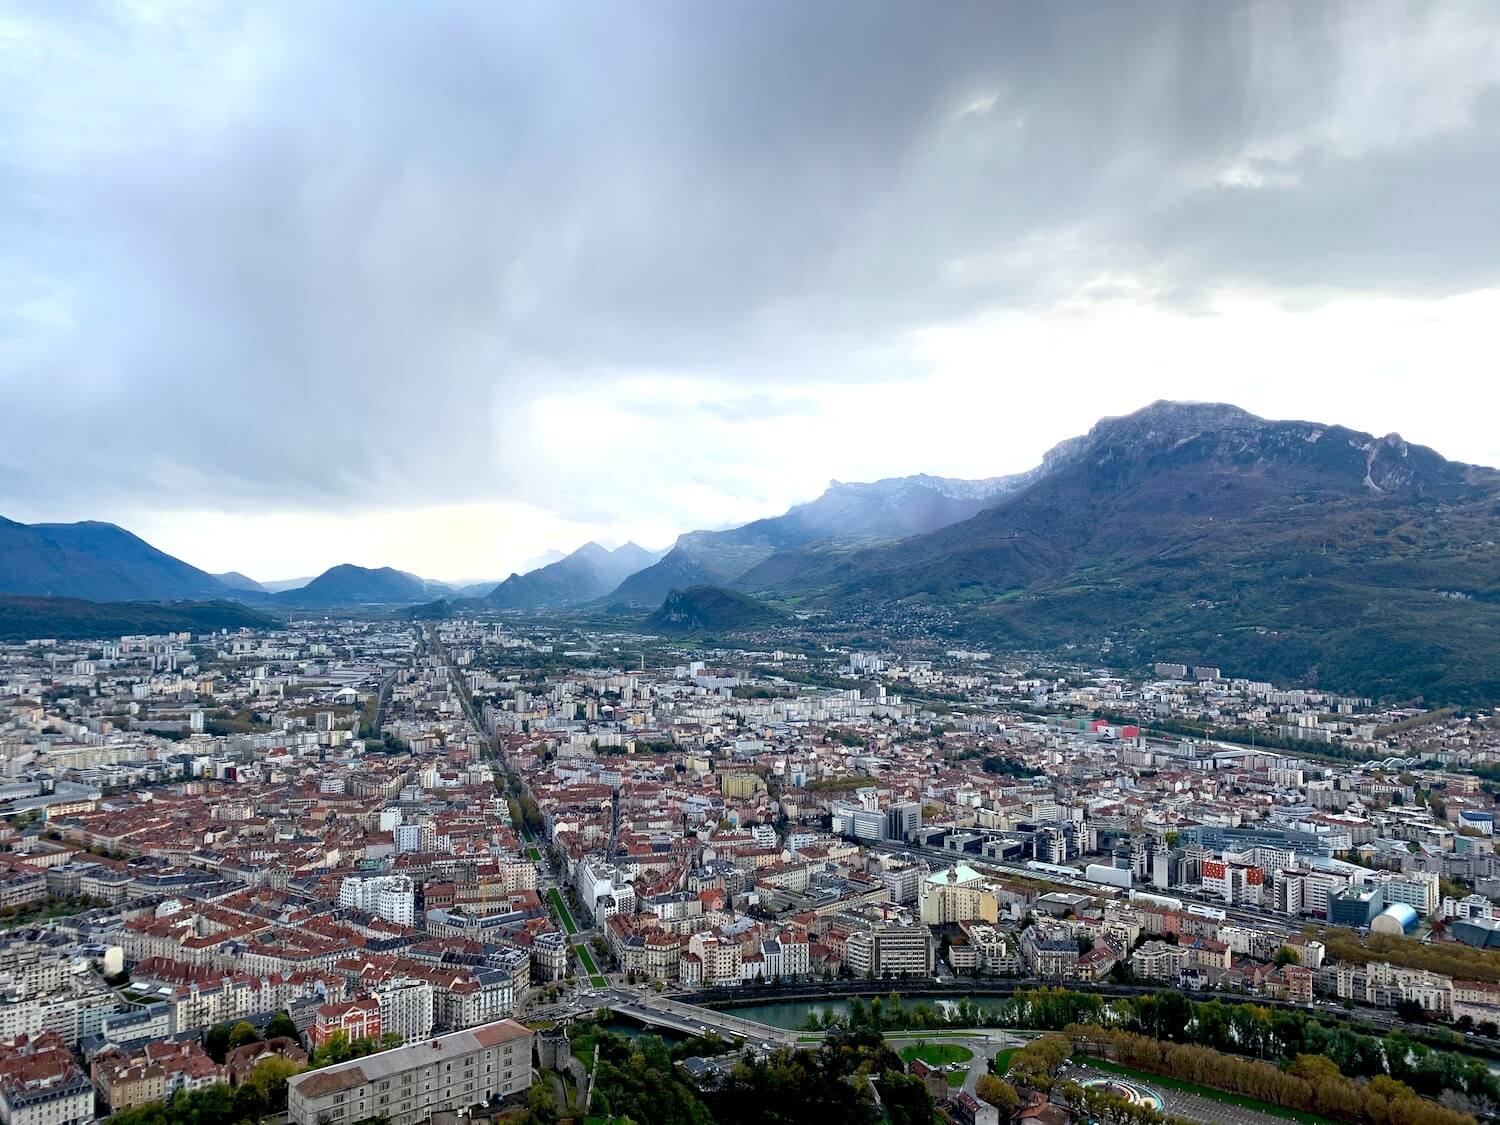 Views of Grenoble